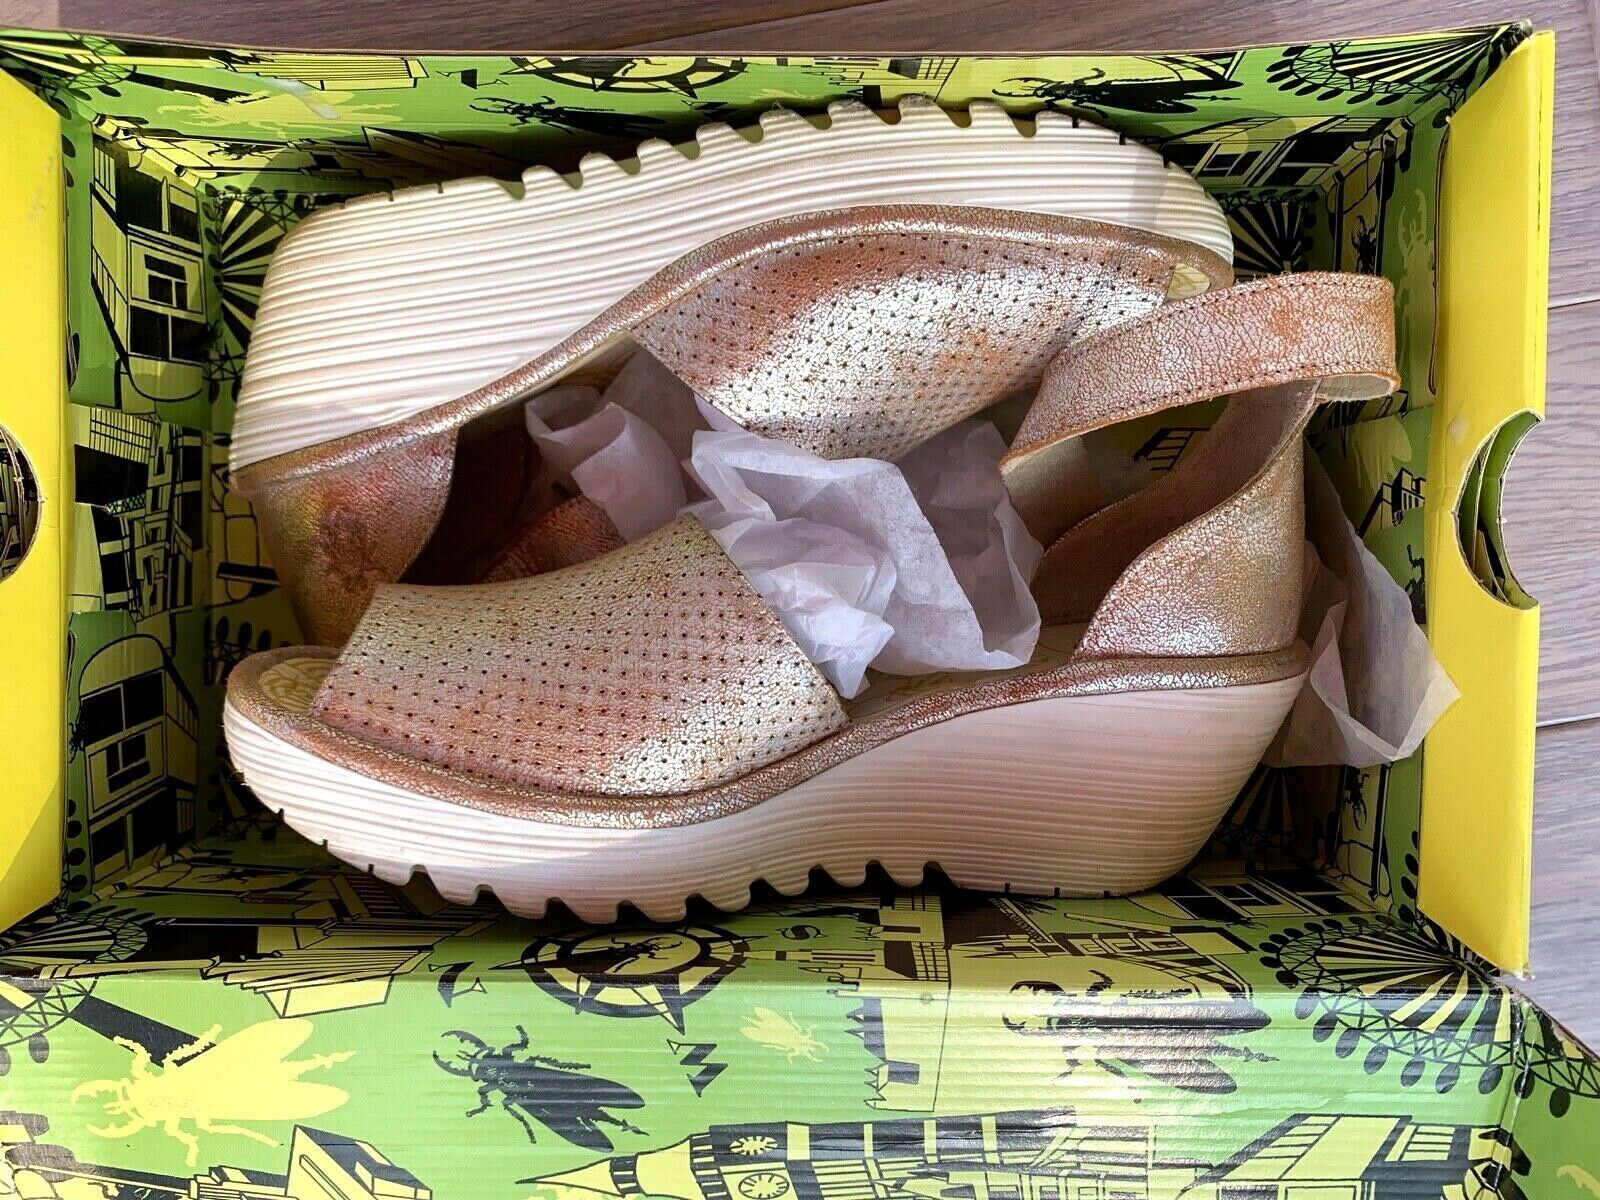 FLY London 40 9 9.5 pearl Perforated Leather Wedge Sandals Yake W Box Preowned